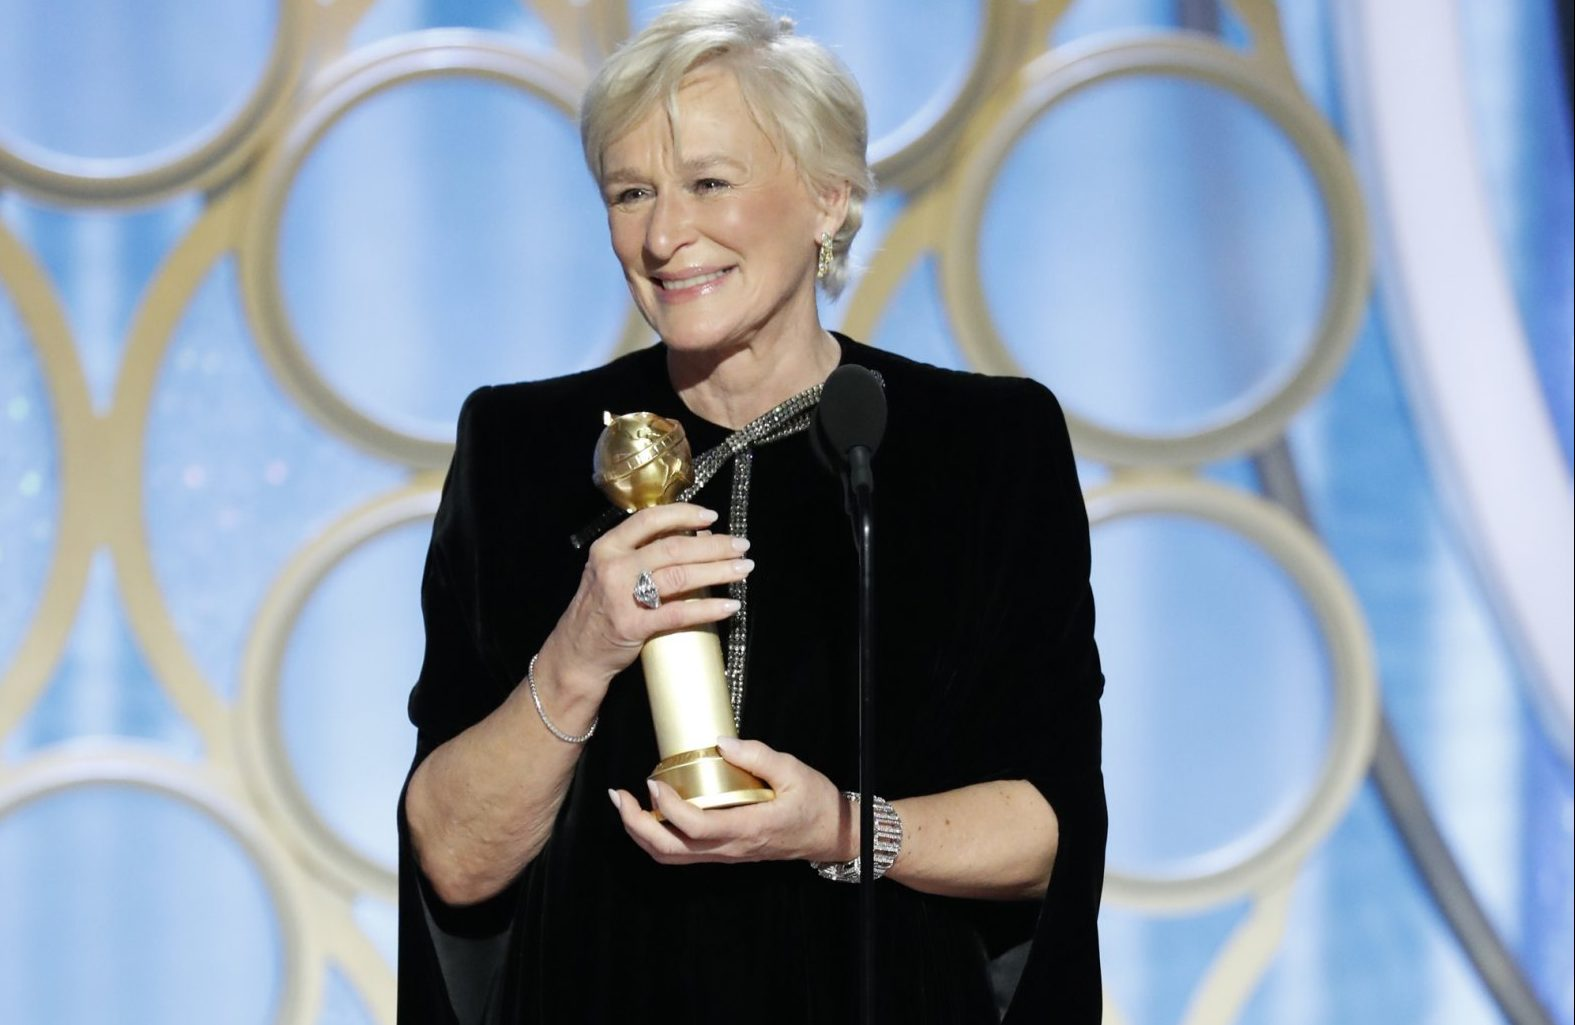 Glenn Close pays emotional tribute to her mother at Golden Globes 2019 as she encourages women to follow their dreams